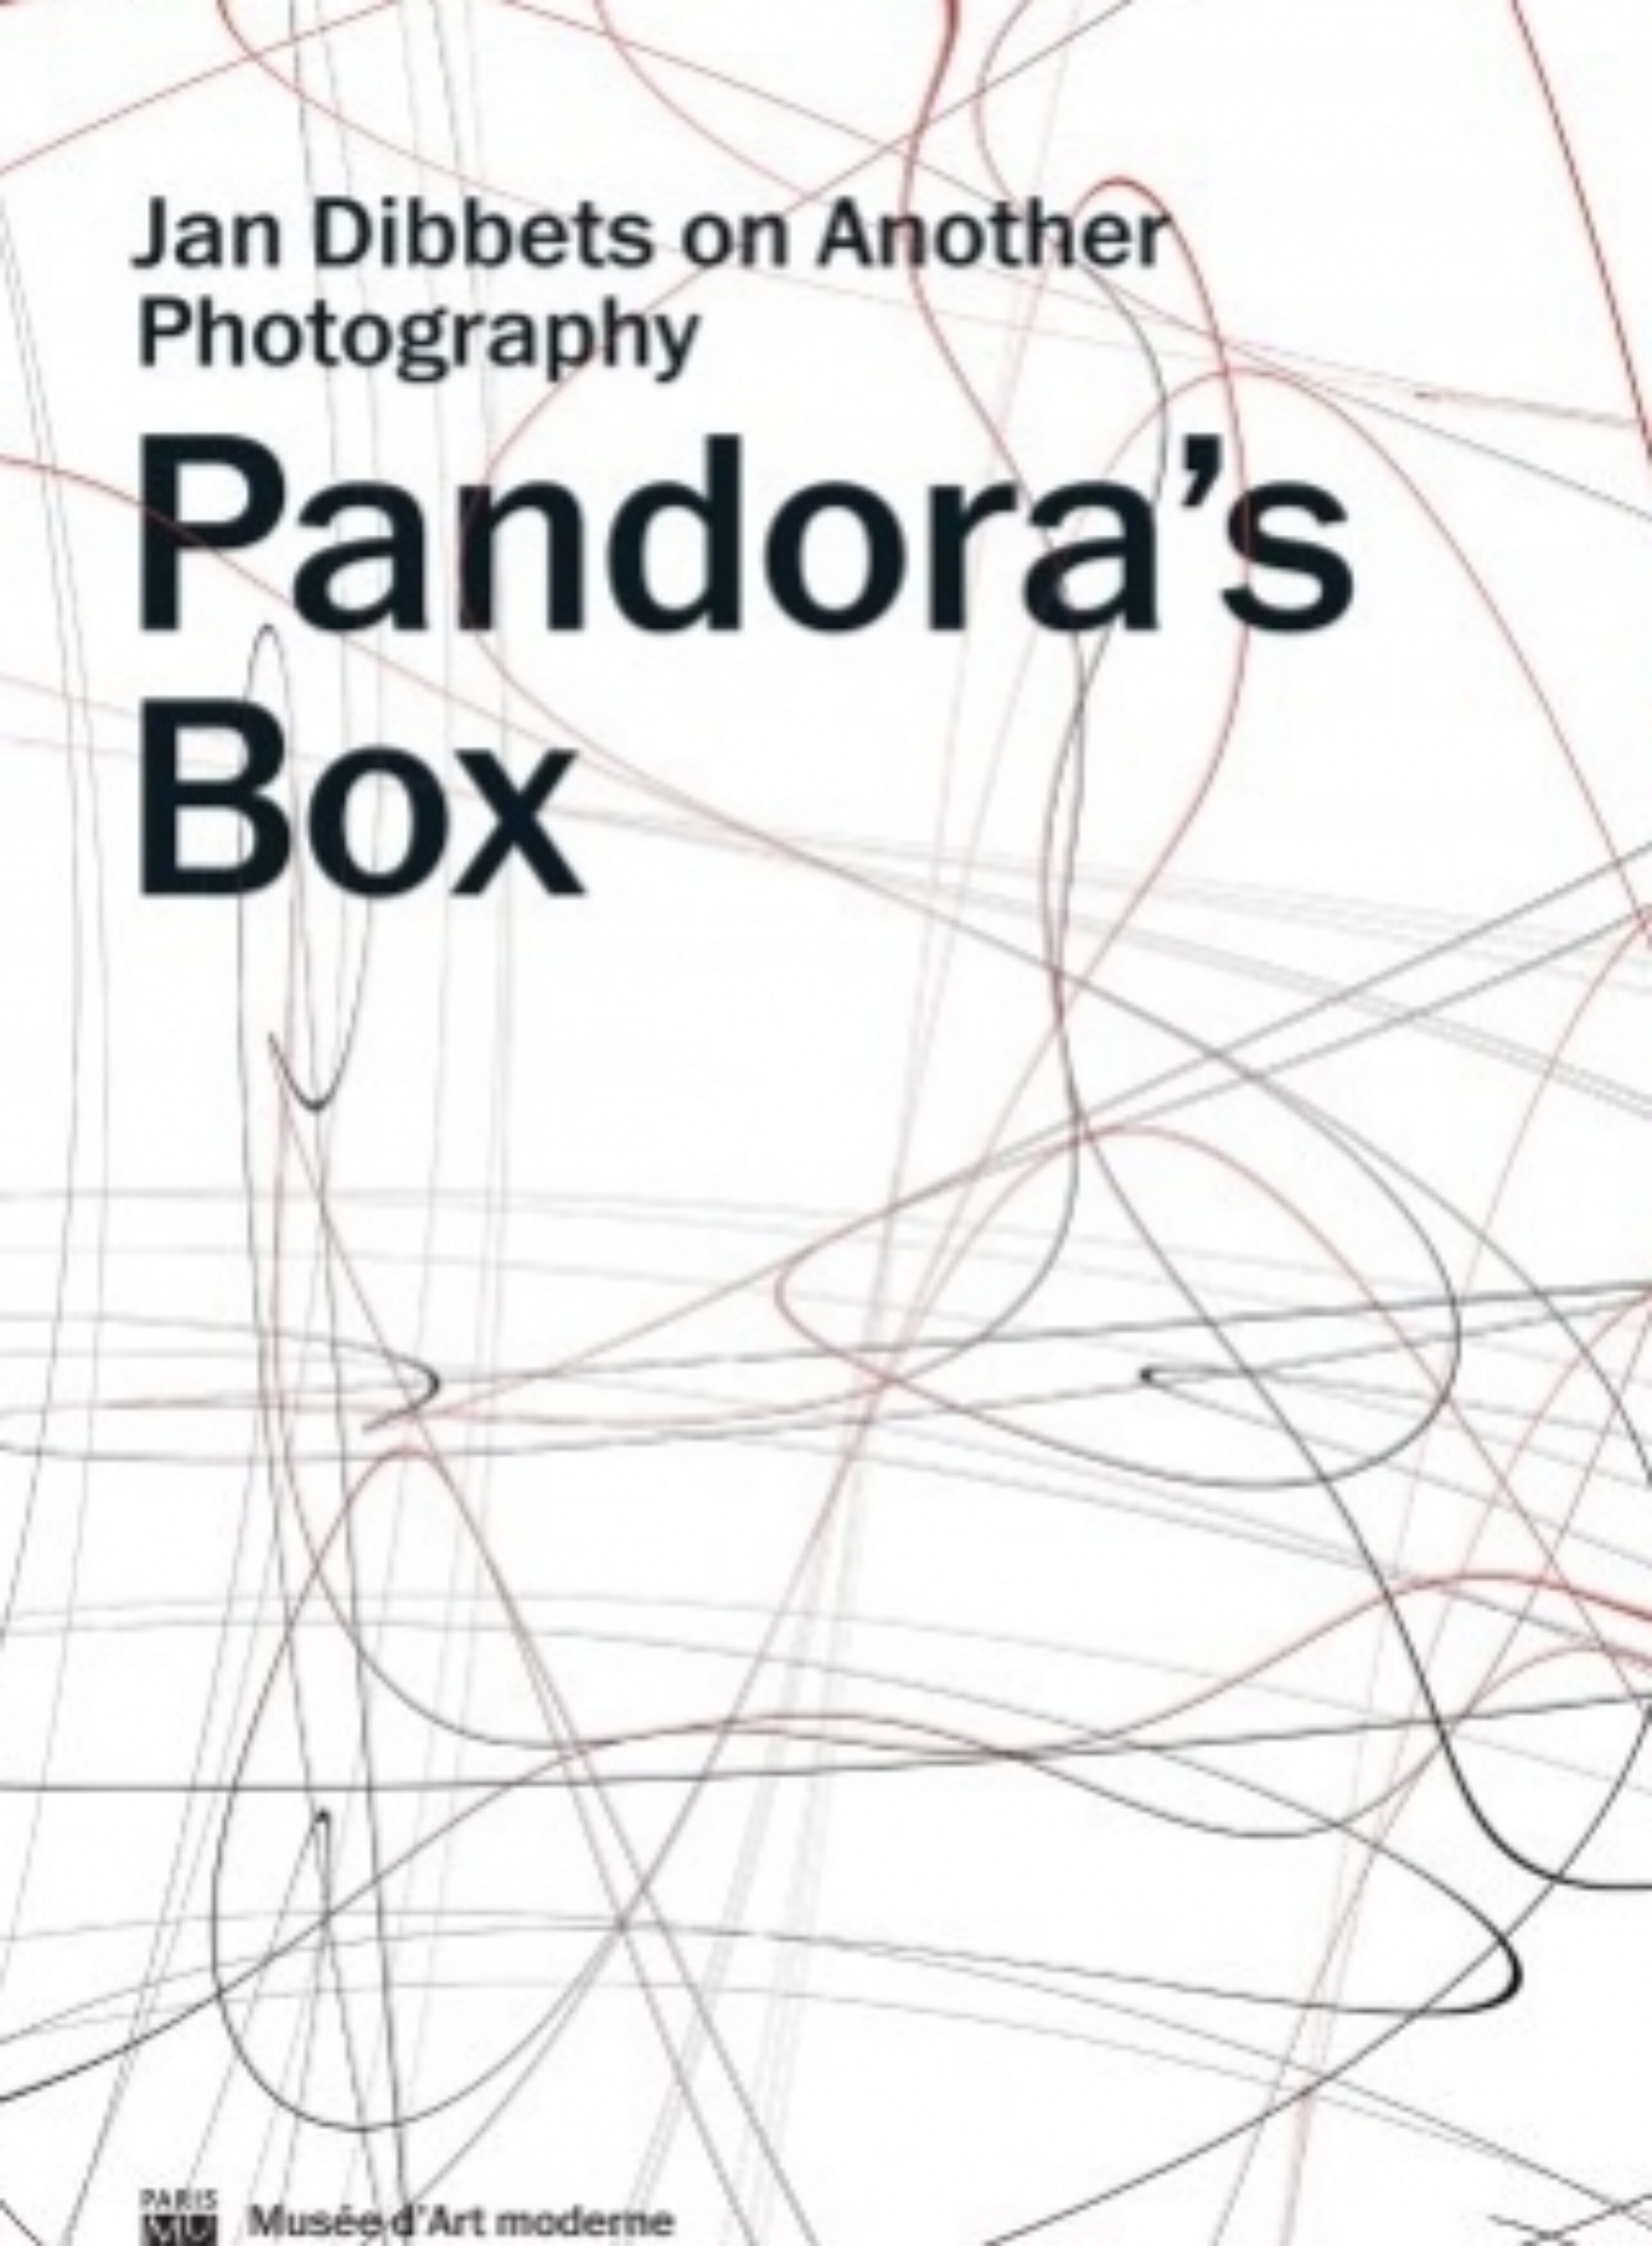 Image of the front cover of Pandora's box